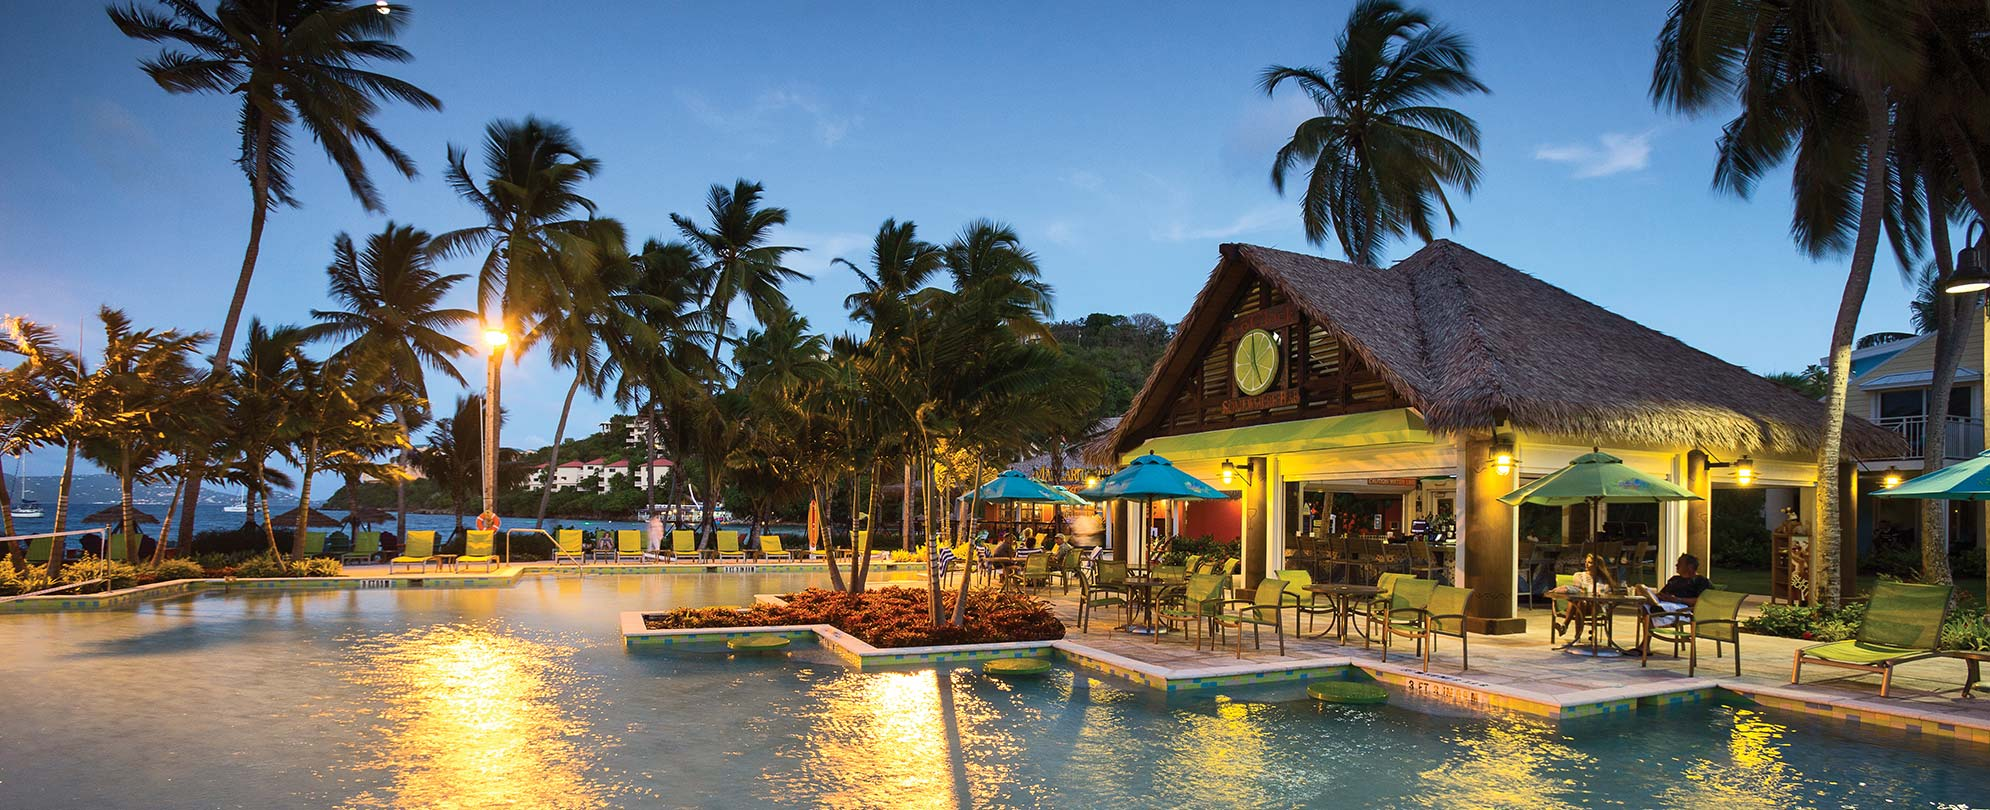 The oceanfront pool and tiki bar in the evening at Margaritaville Vacation Club by Wyndham - St. Thomas, a timeshare resort.